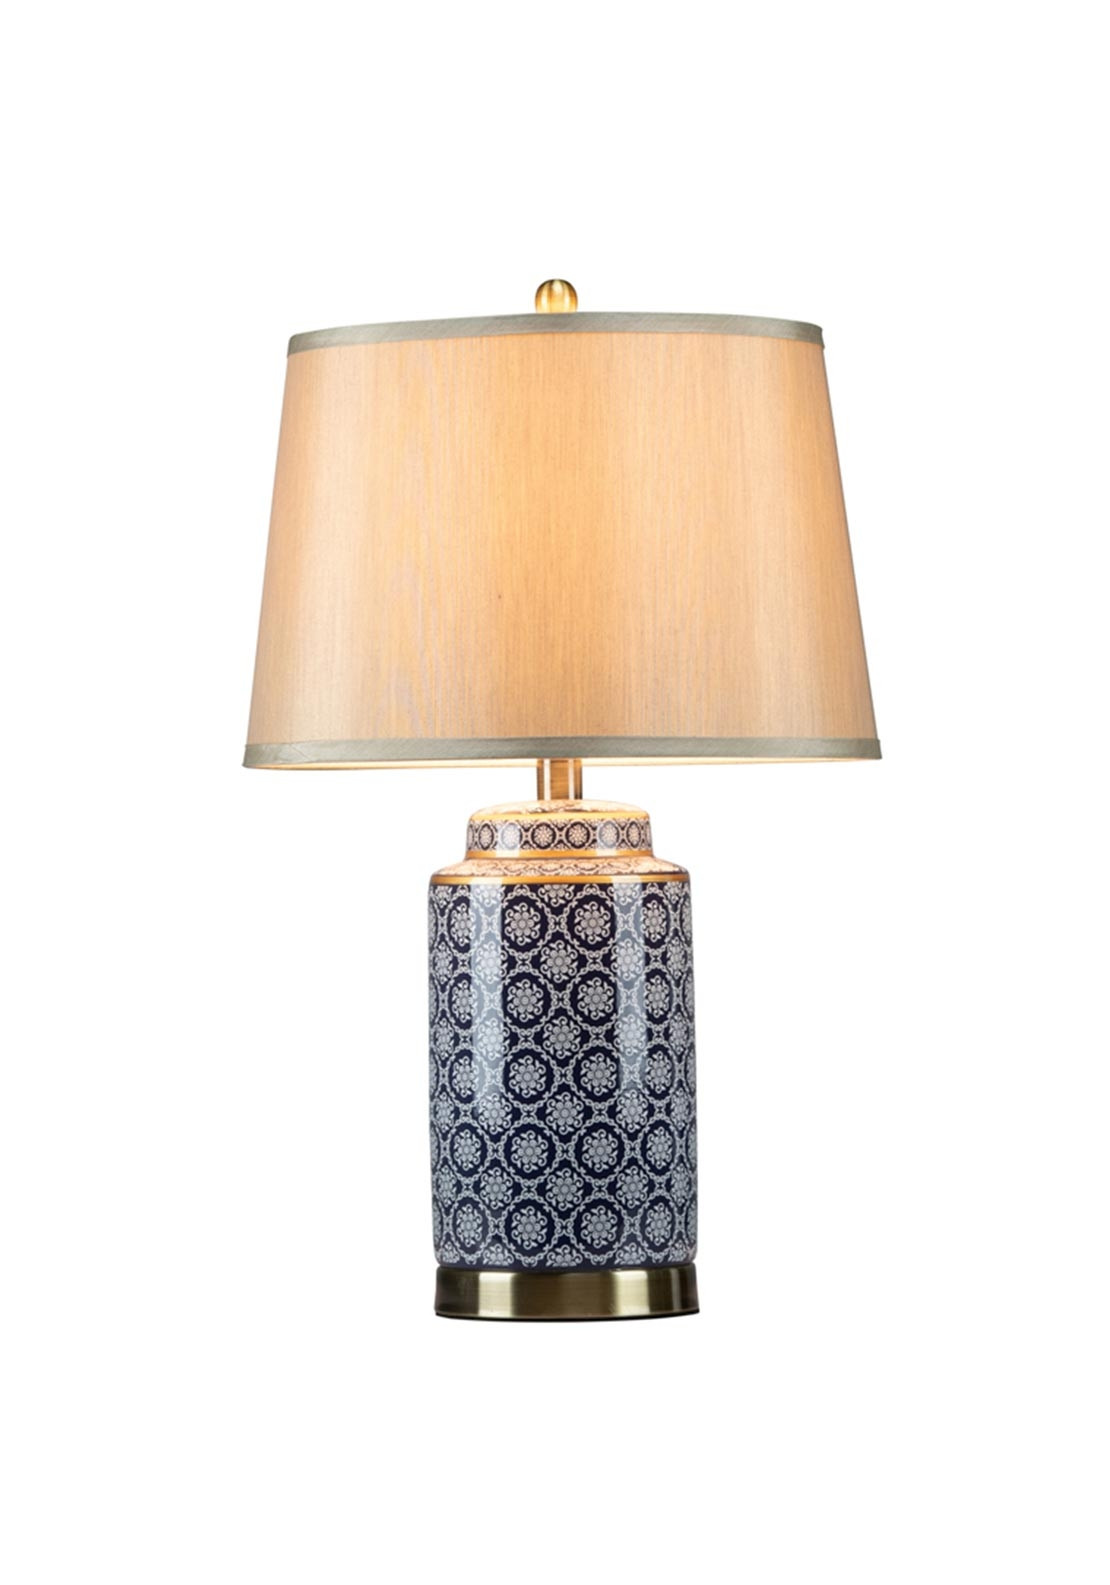 South Row Victoria Table Lamp